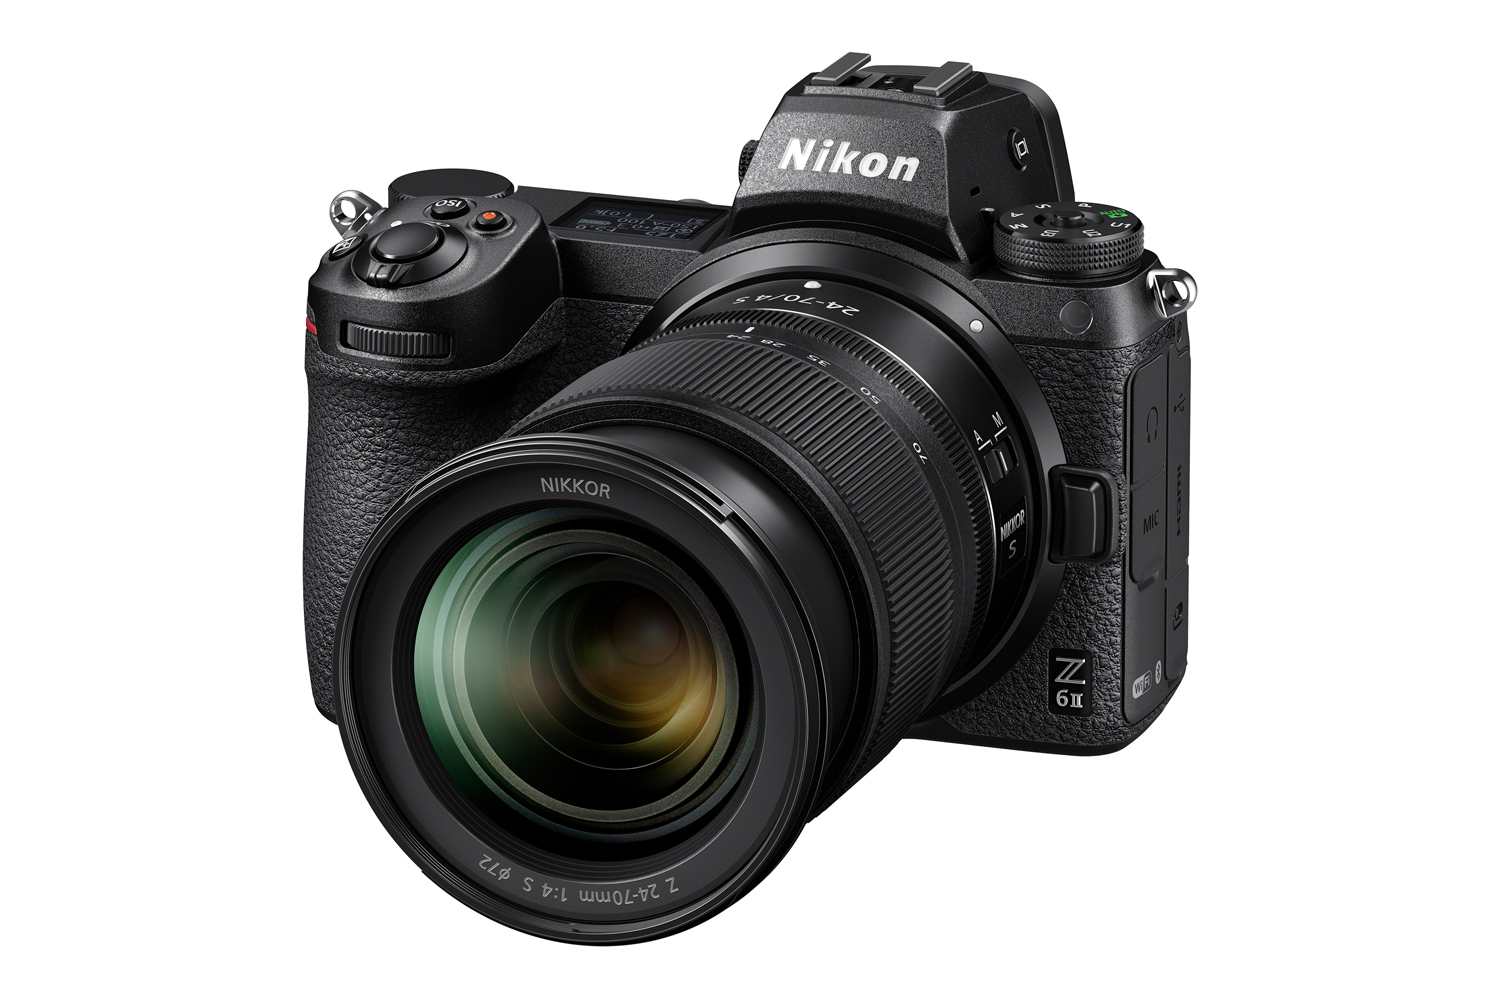 Top 5 Most Underrated Cameras For 2021: Nikon Z6 II